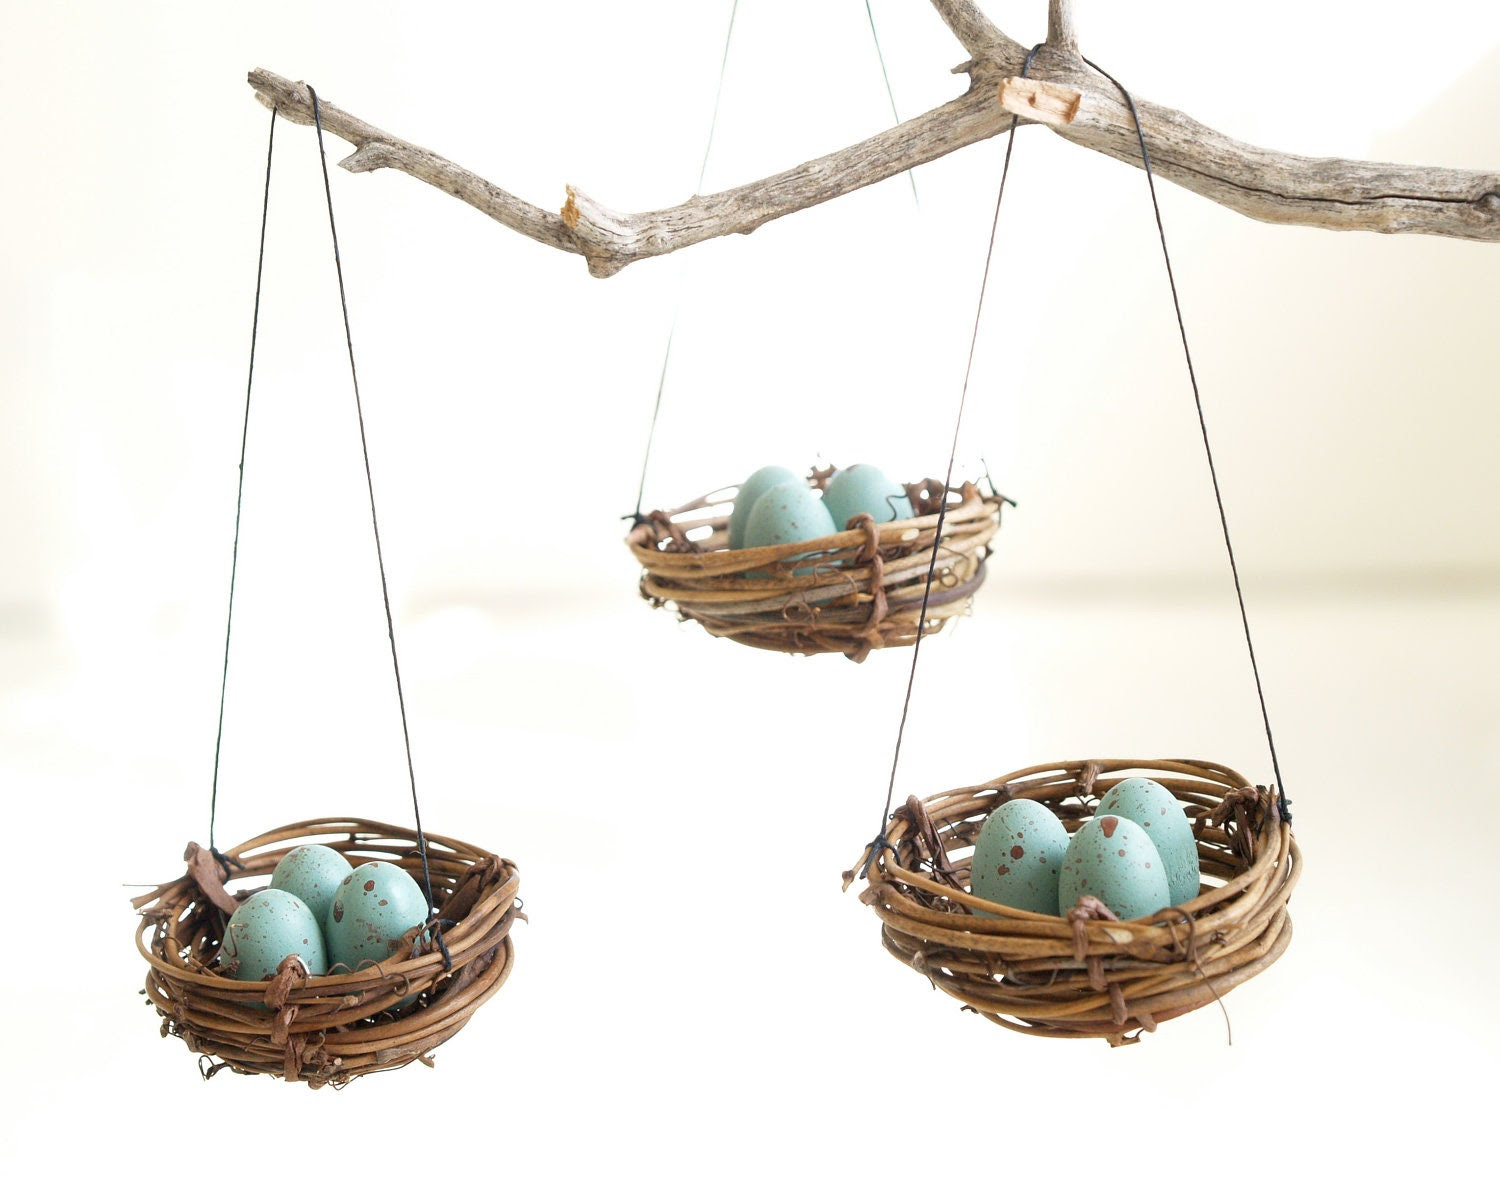 Christmas Ornaments Nest, Blue Robins Eggs, Tree Decorations, Winter Decorating, natural nature inspired handmade eco friendly Home Decor - Fairyfolk